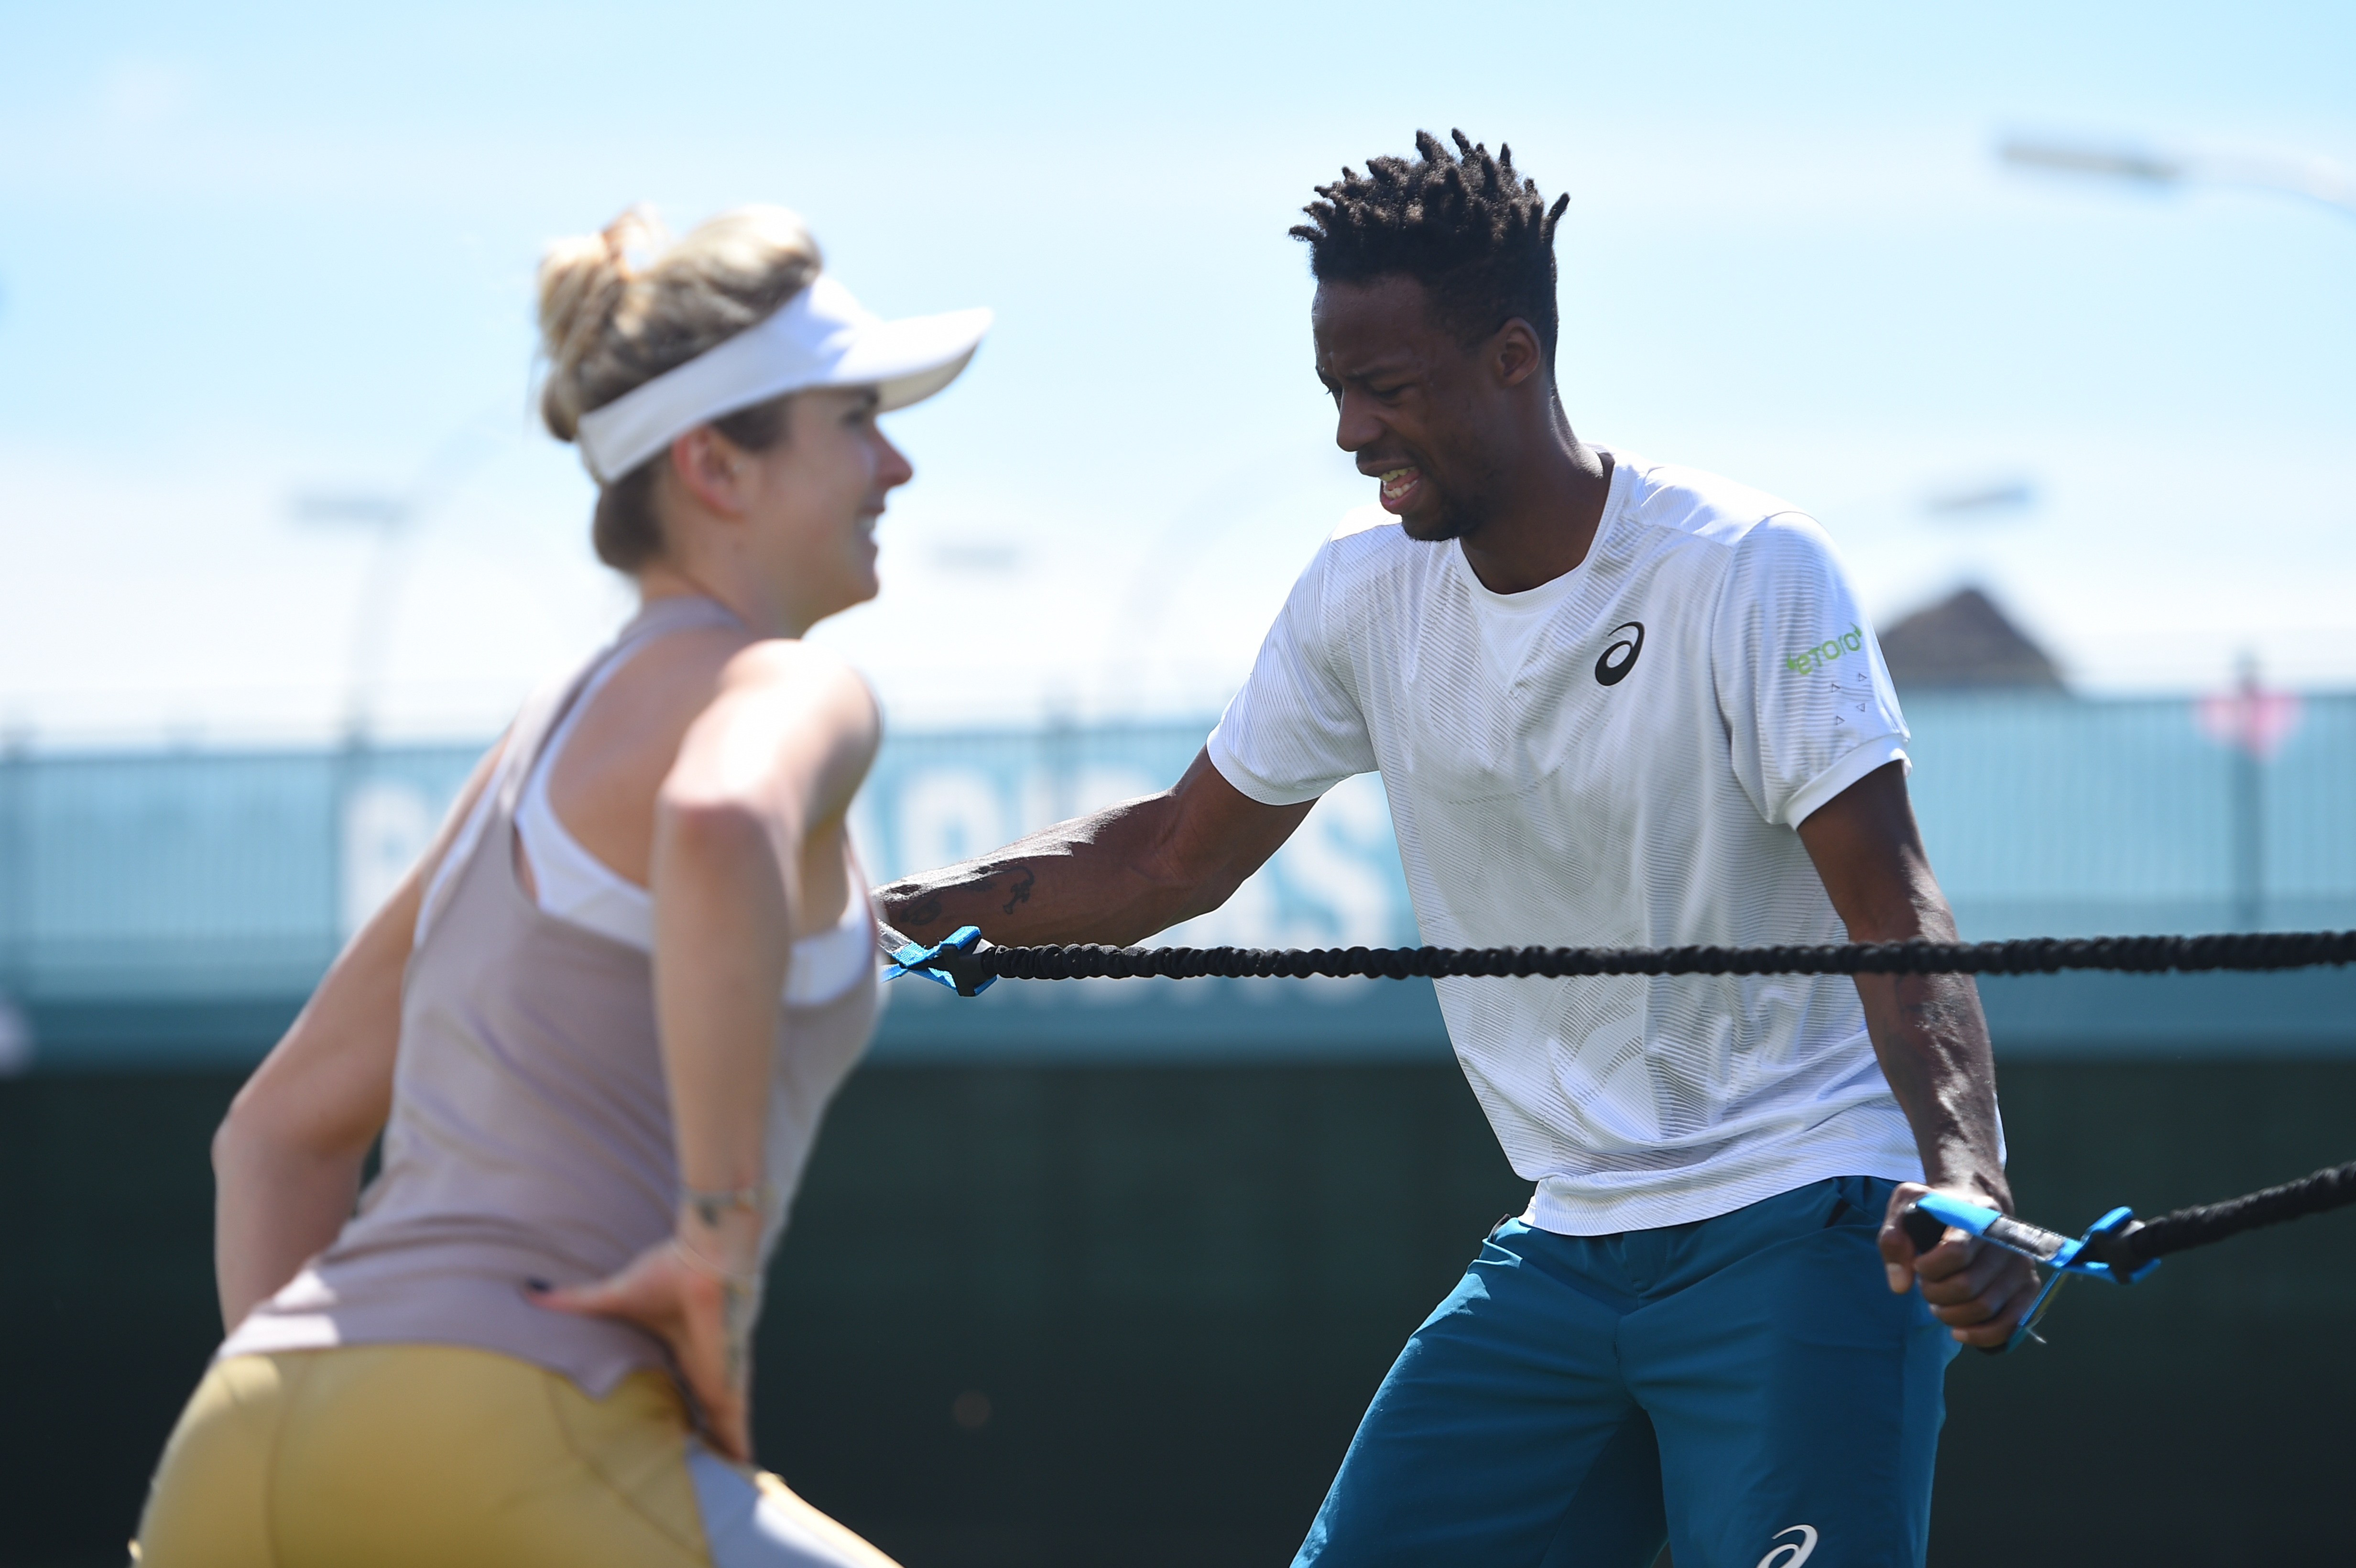 Love story between Elina and Gael.